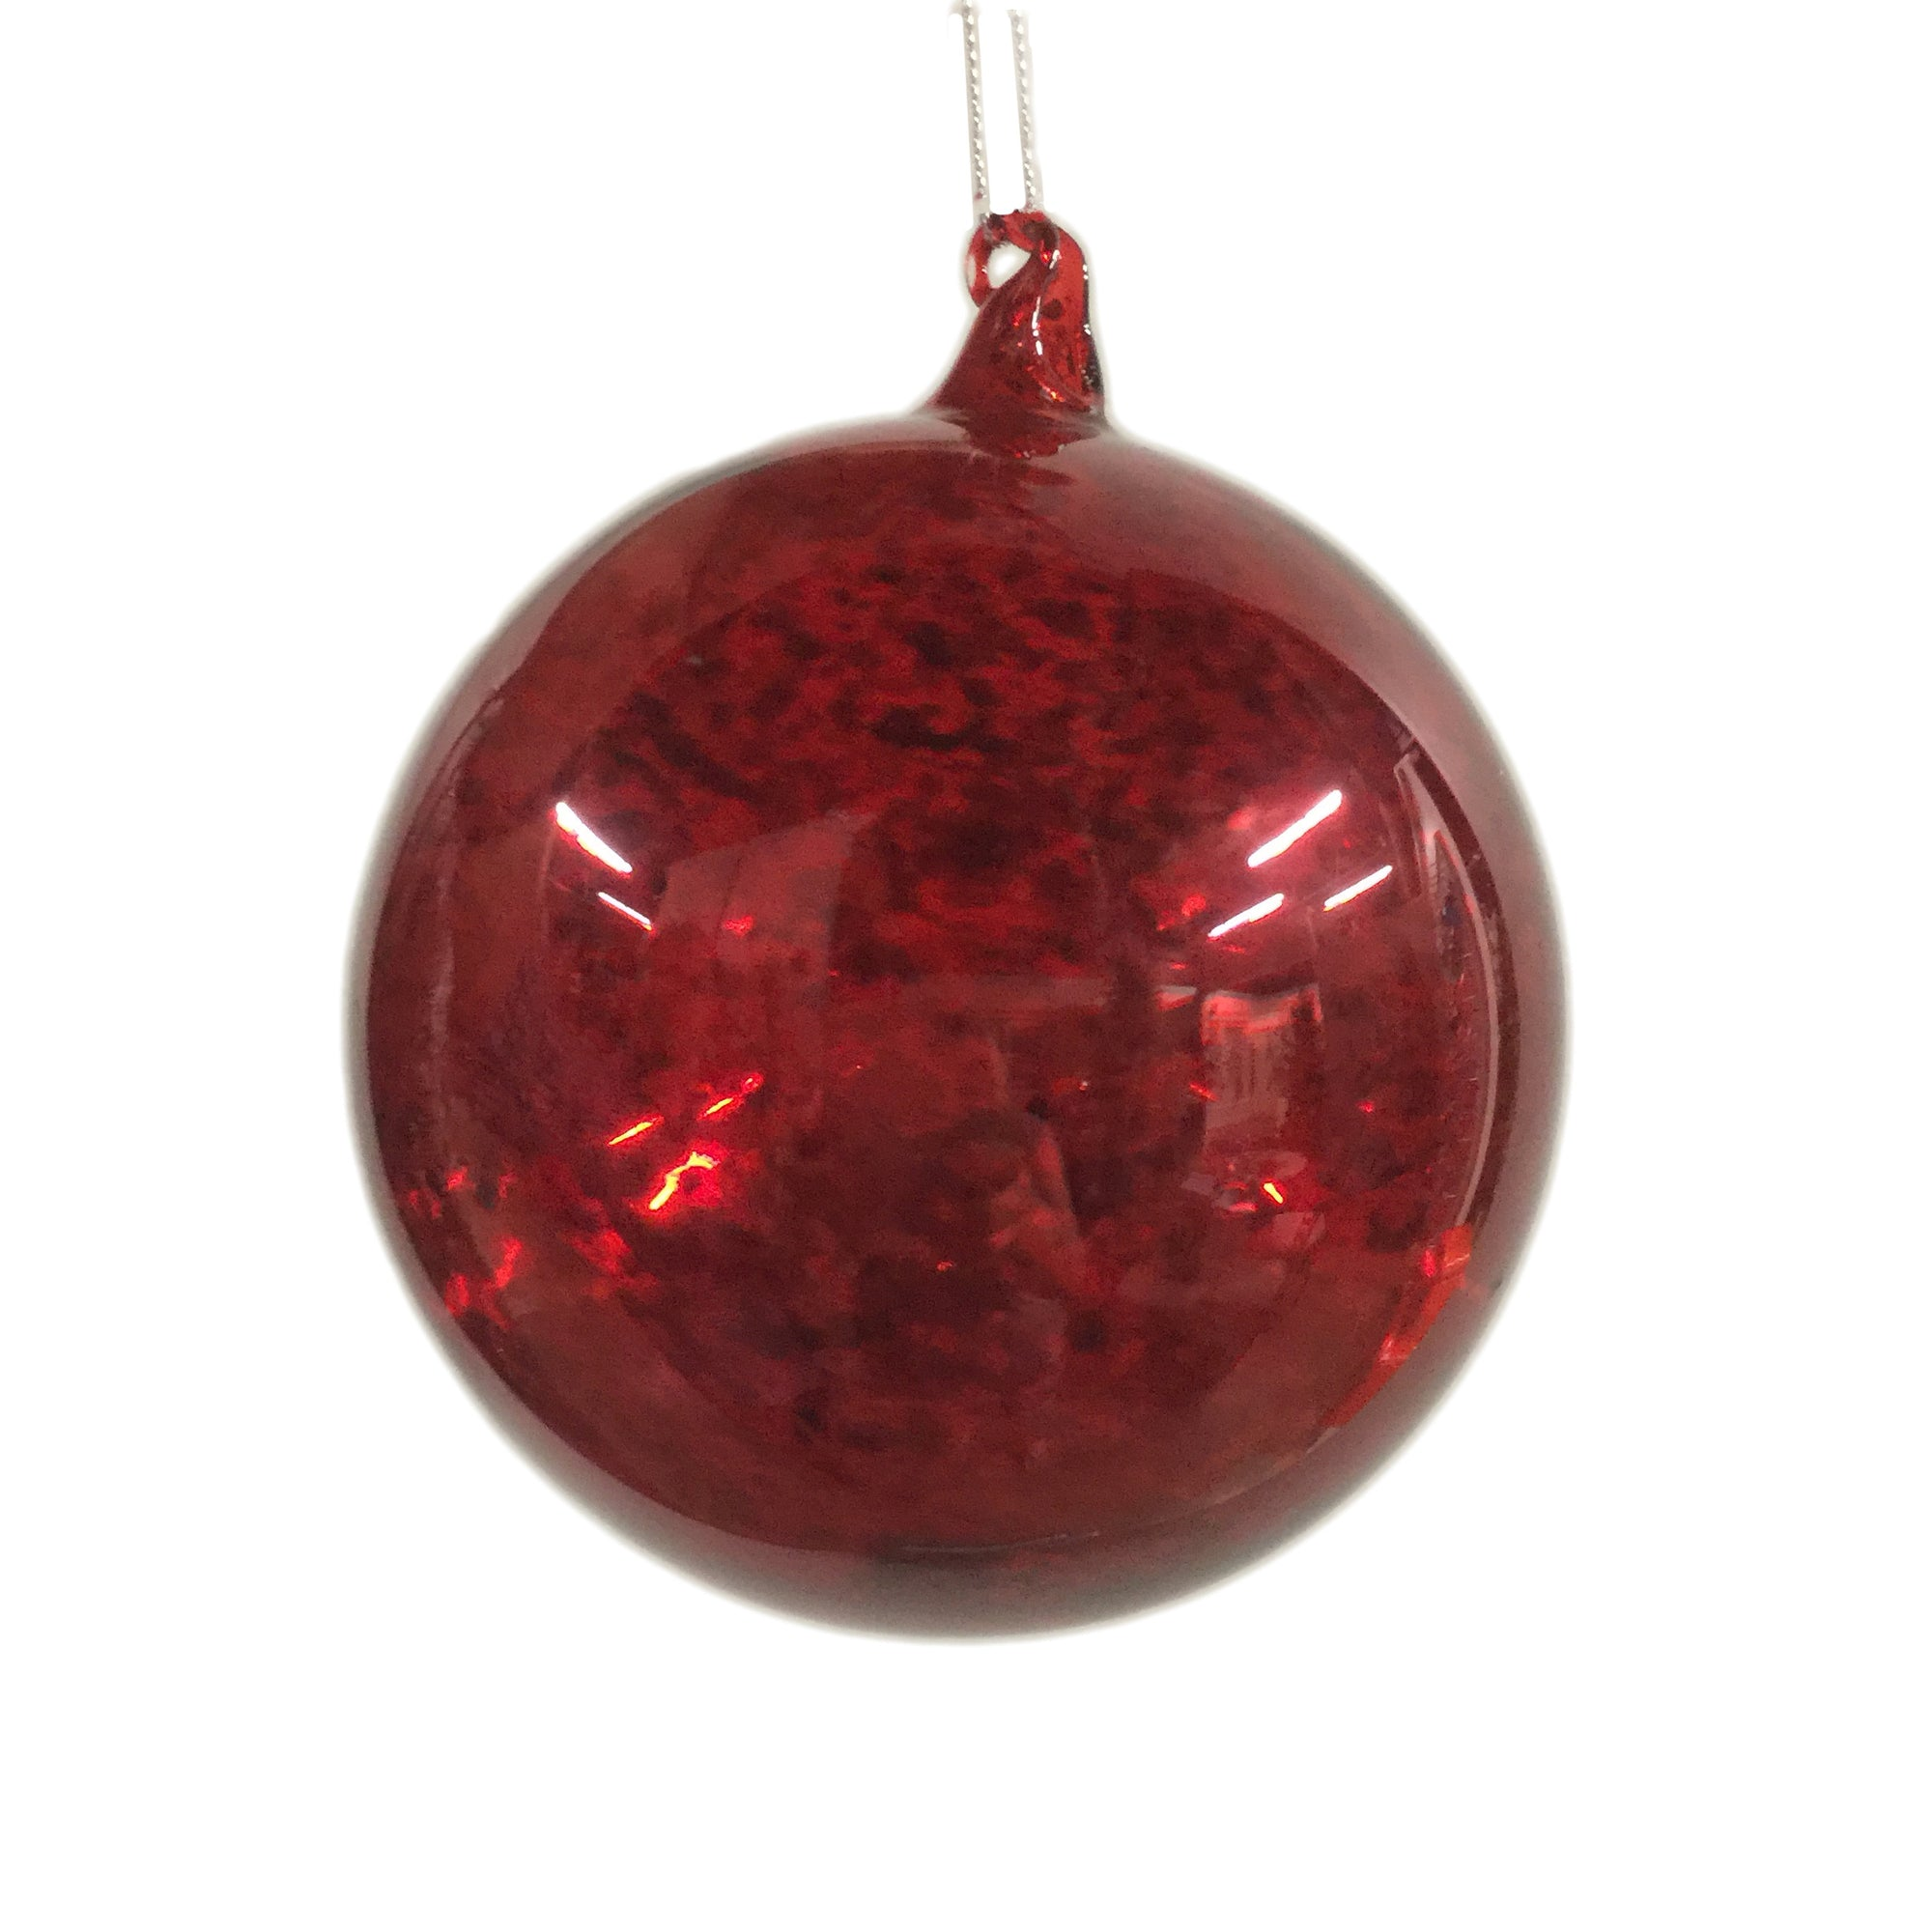 Jim Marvin Mercury Glass Ball Ornament - Red